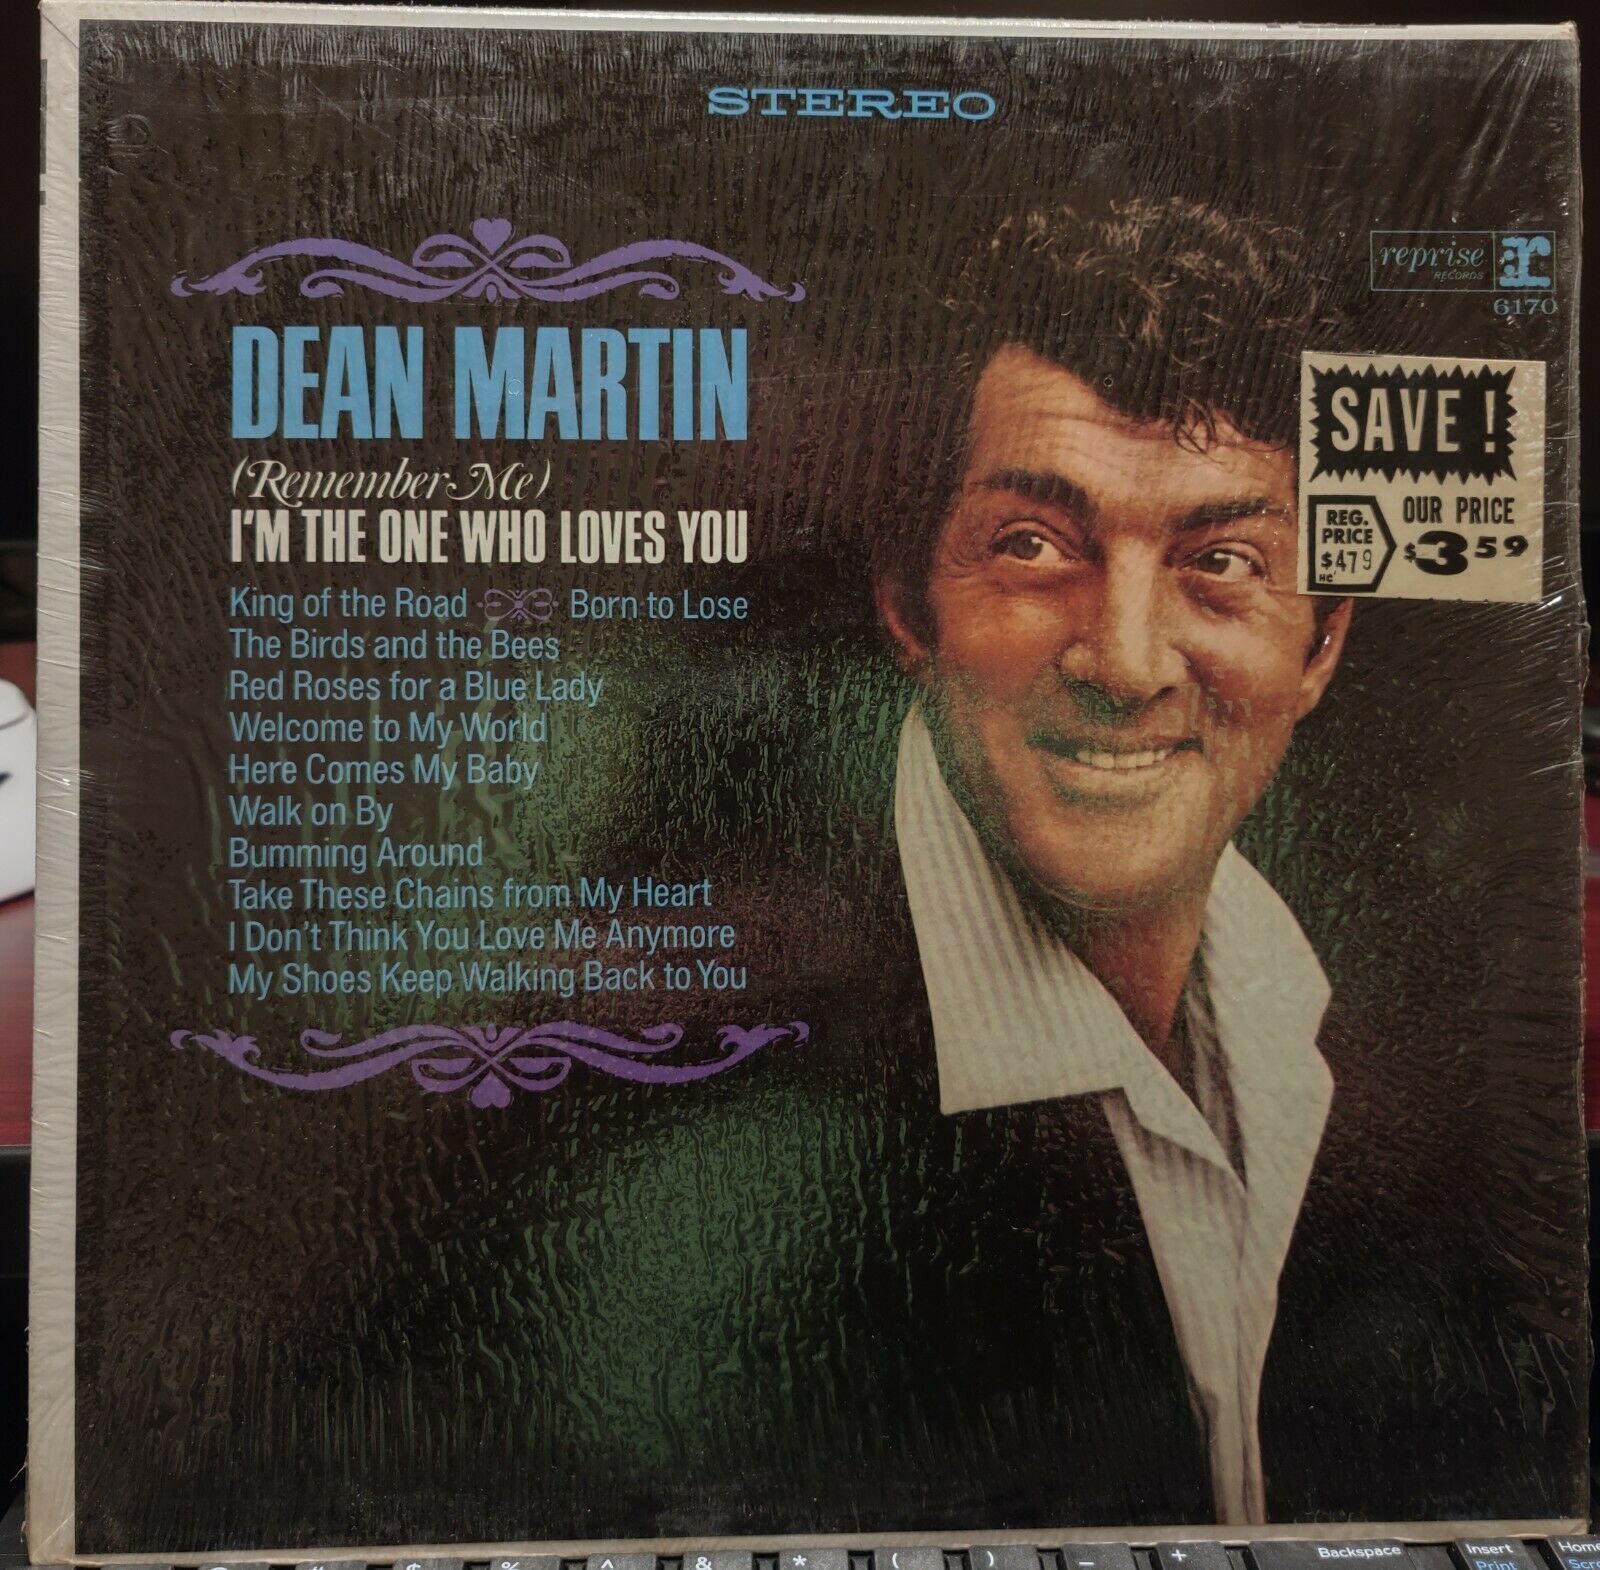 Dean Martin - I m The One Who Loves You Stereo LP RS-6170 - $1.47